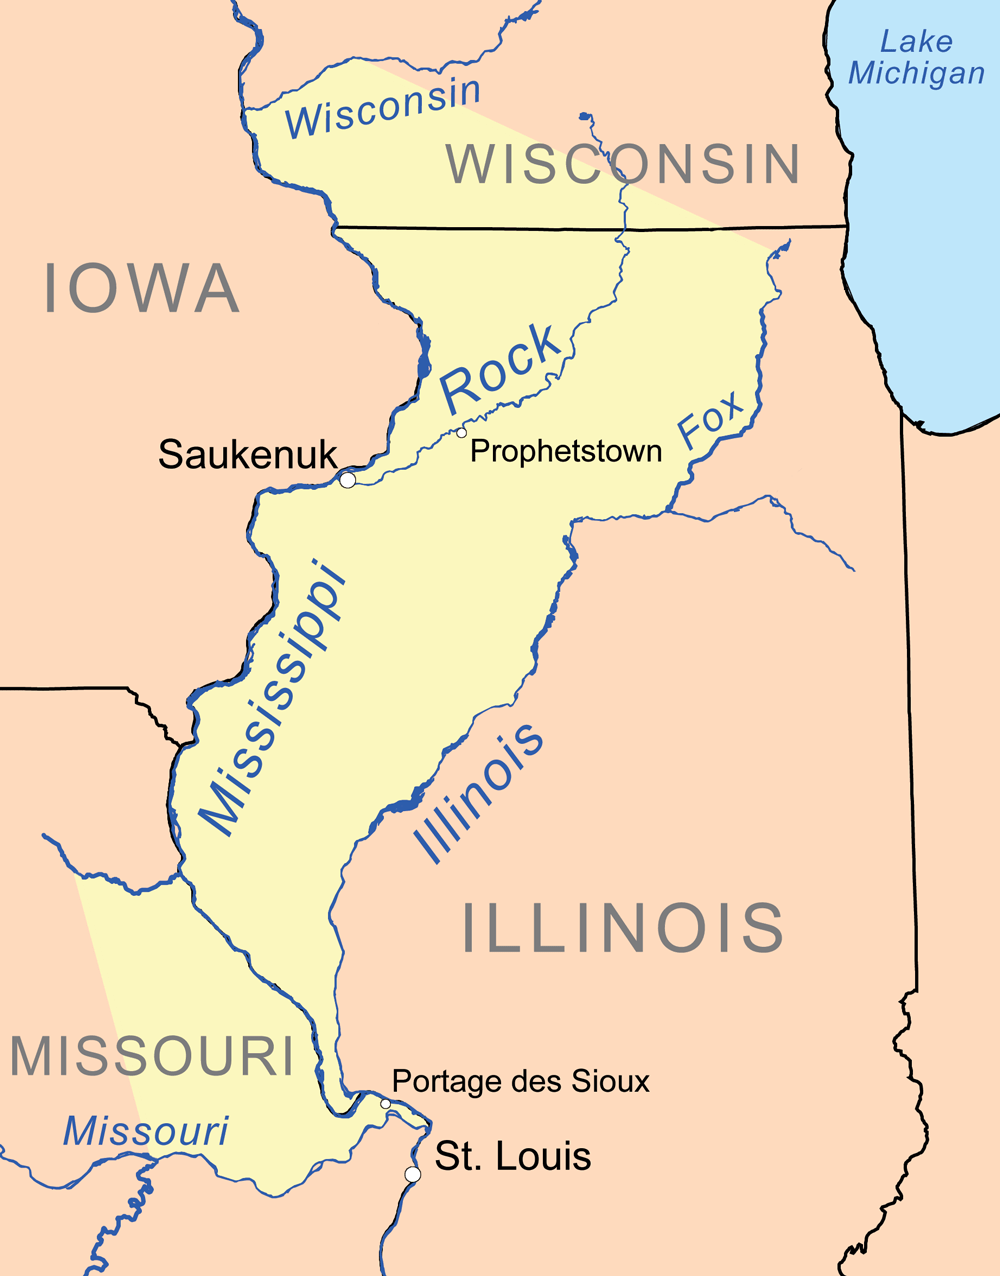 Missouri Indian Tribe Map : missouri, indian, tribe, Treaty, Louis, (1804), Wikipedia